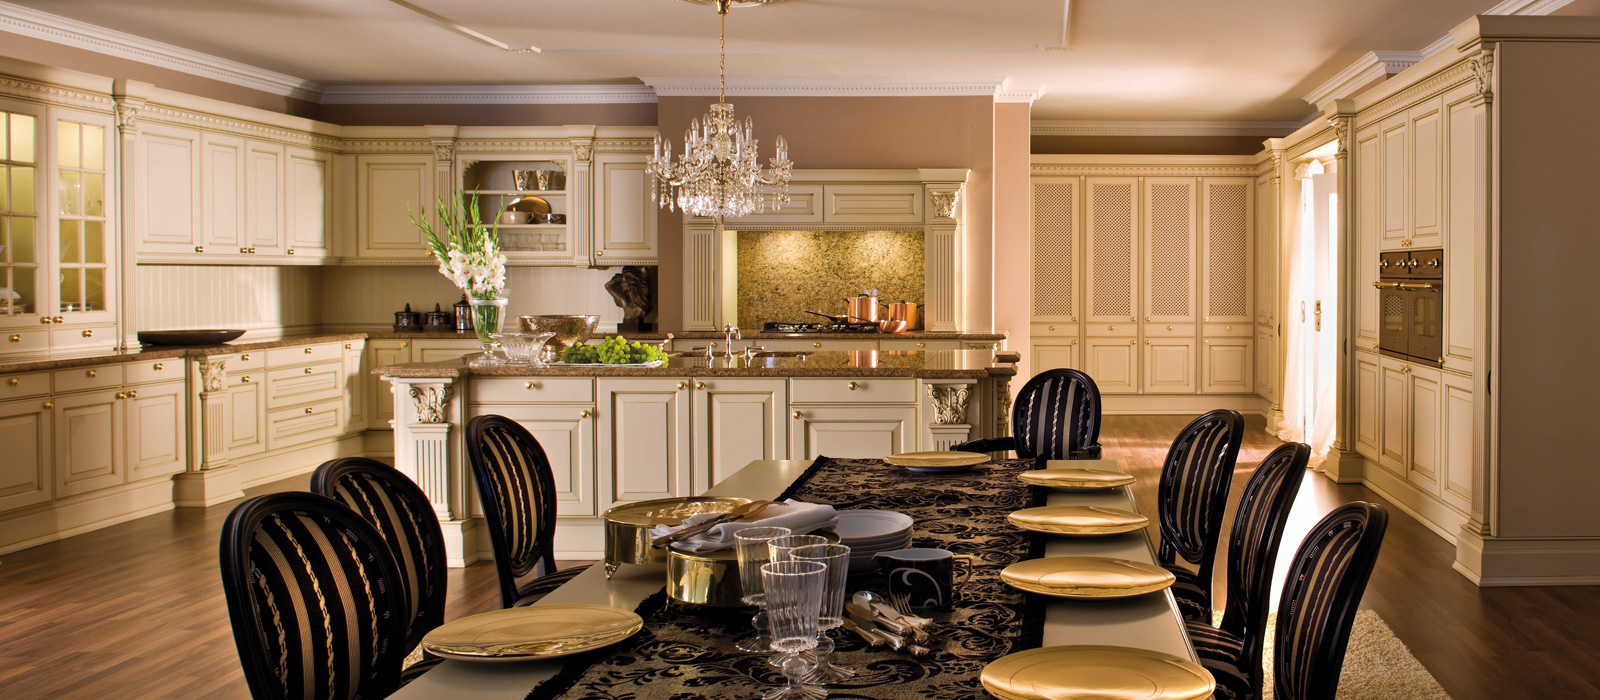 Luxury european kitchen cabinets kitchen cabinets leicht new york - Luxury kitchen cabinets ...